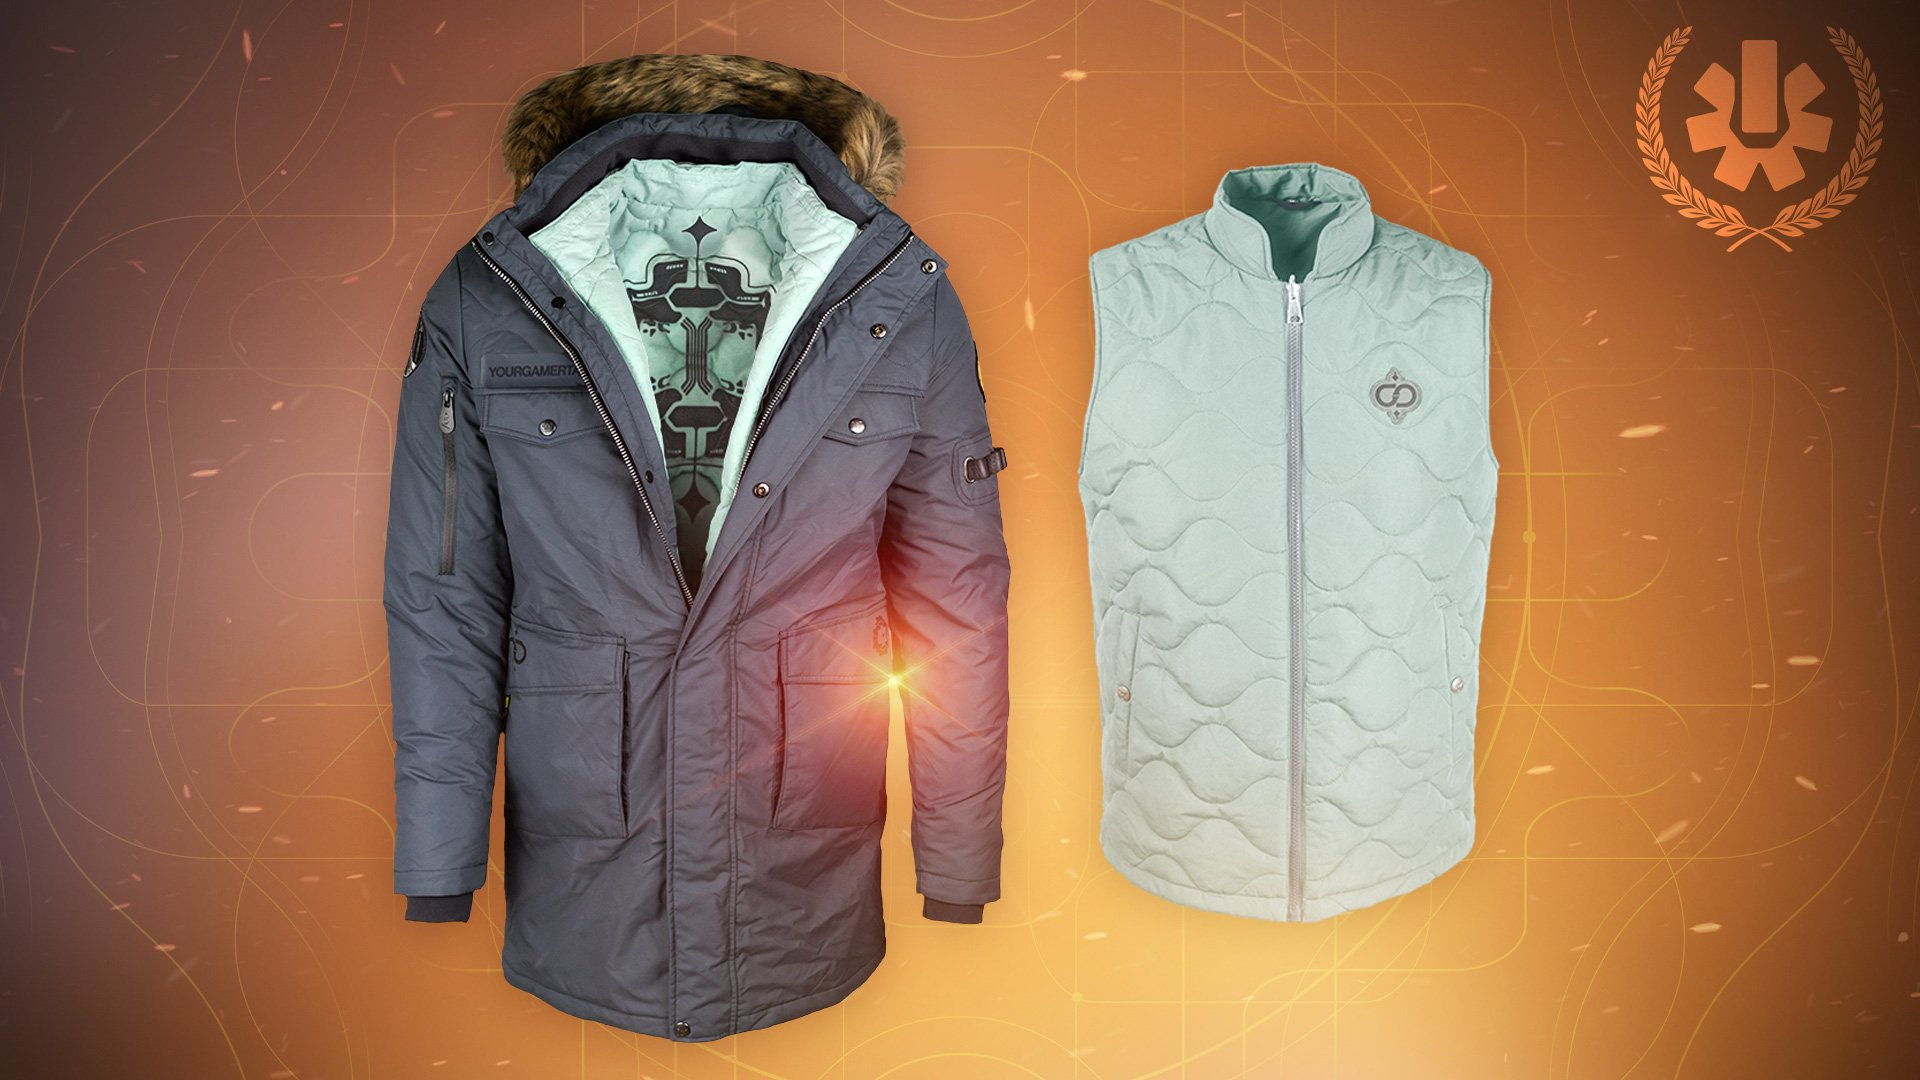 Bungie is offering a jacket if you beat the new Destiny 2 raid by December 1 screenshot